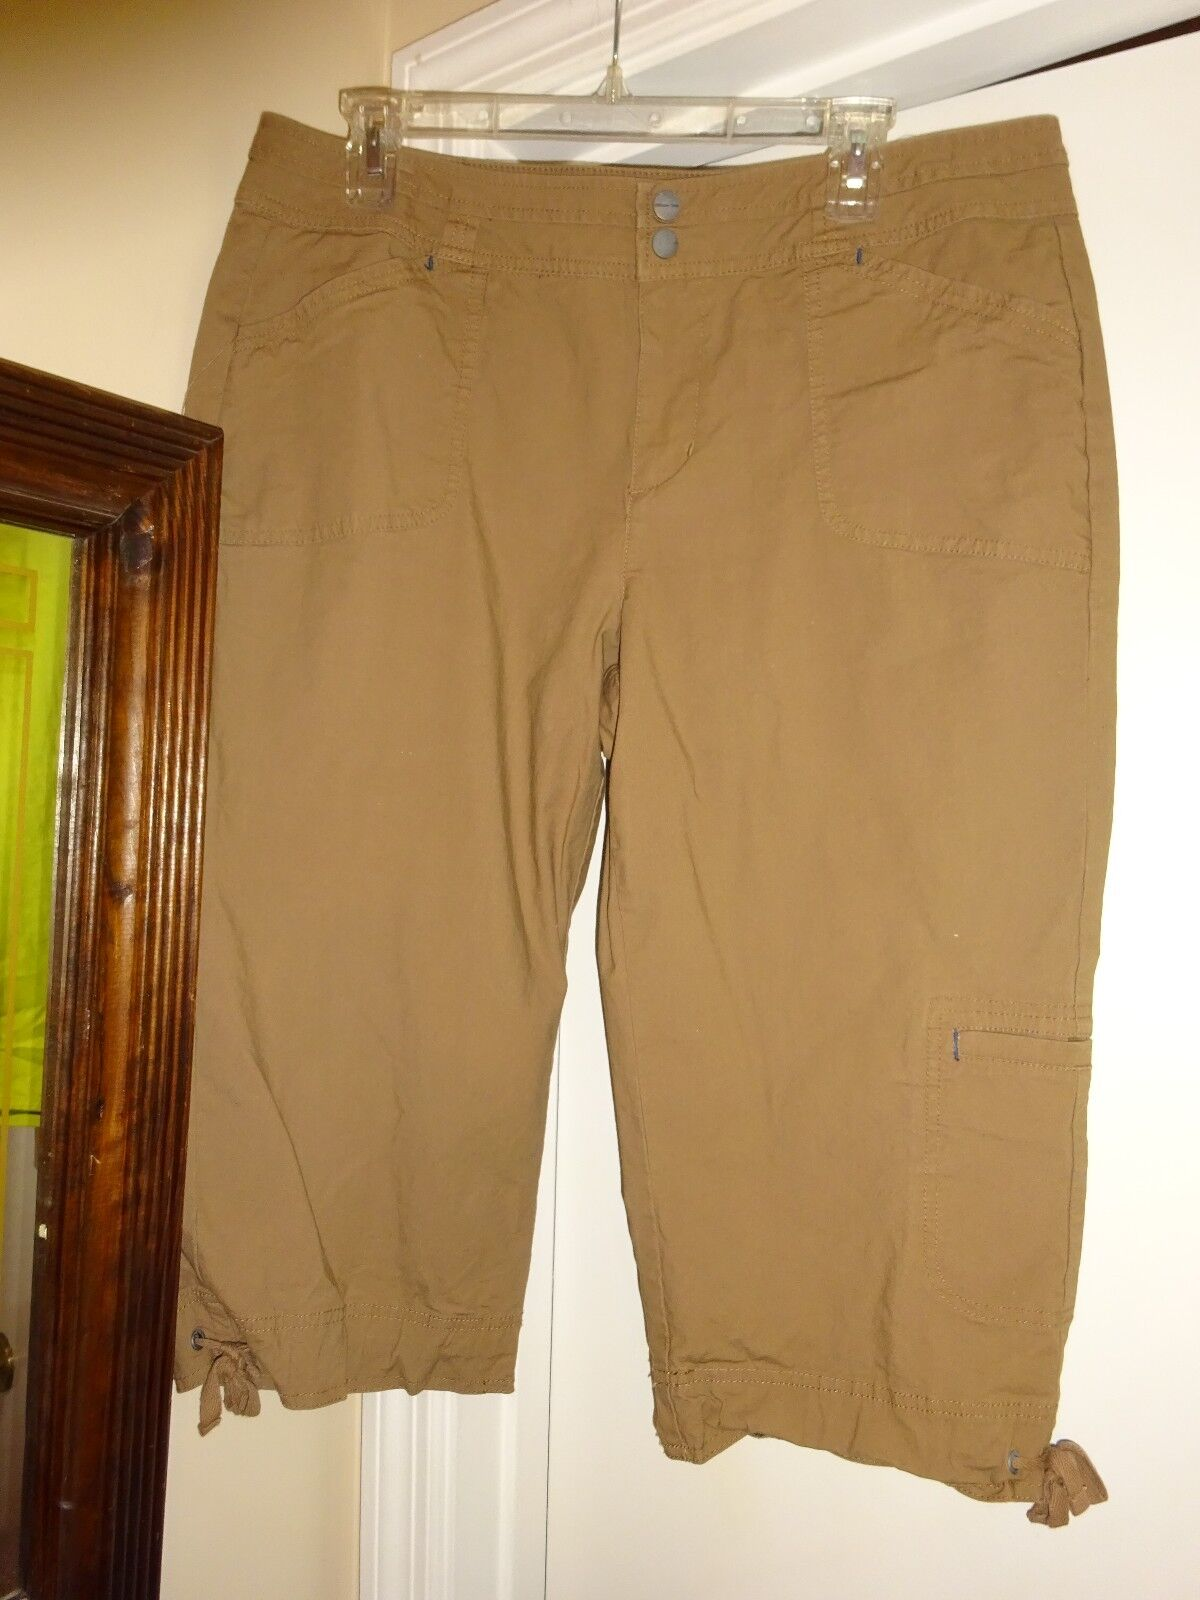 COLDWATER CREEK Capri Capri's Cropped Pants Size P-14 Light Brown Cotton